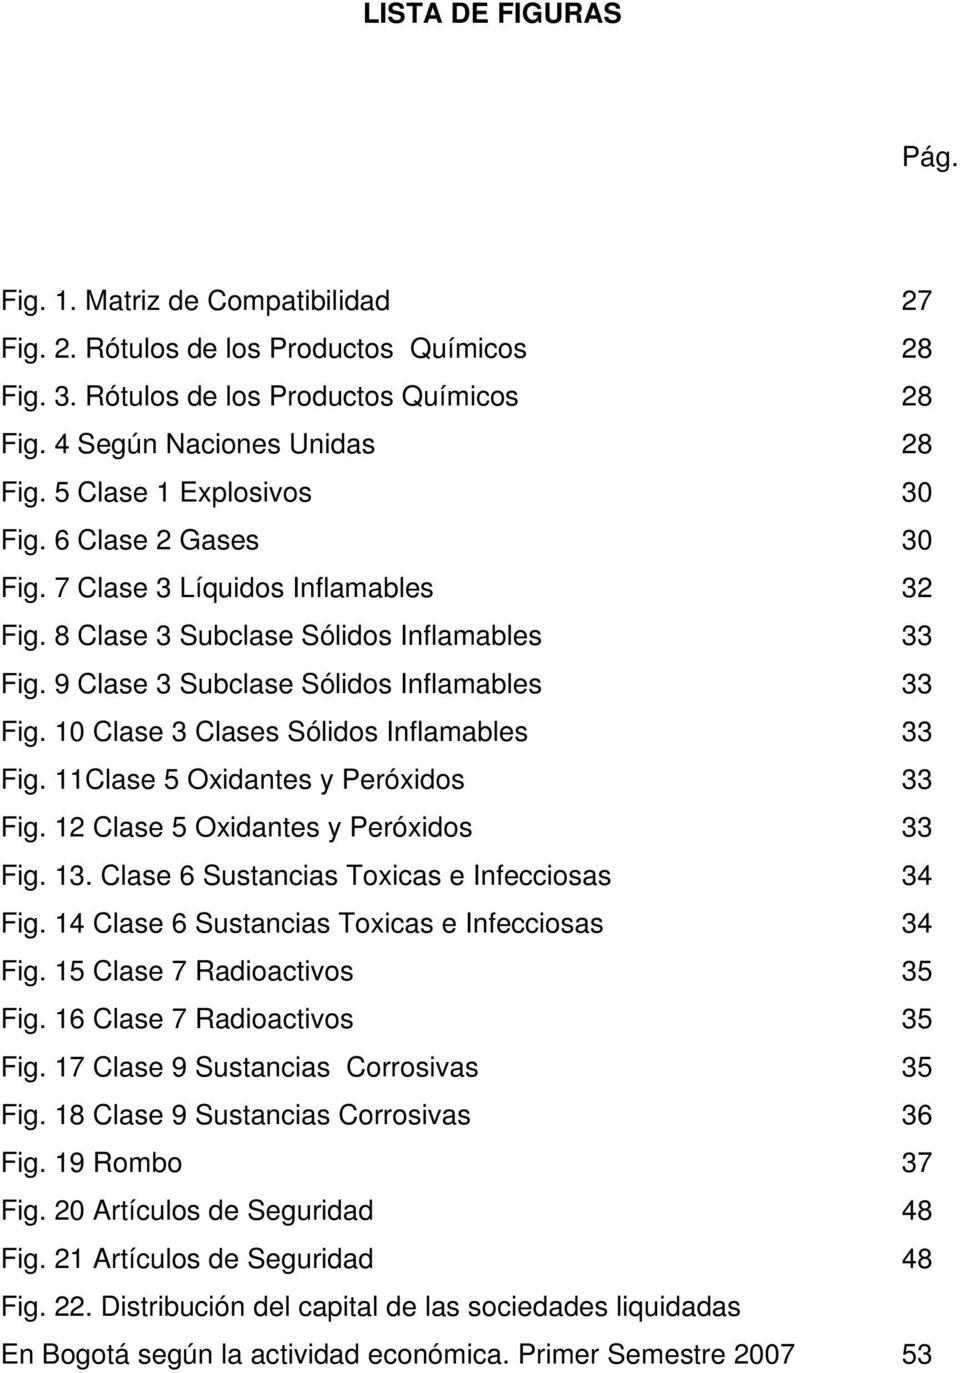 10 Clase 3 Clases Sólidos Inflamables 33 Fig. 11Clase 5 Oxidantes y Peróxidos 33 Fig. 12 Clase 5 Oxidantes y Peróxidos 33 Fig. 13. Clase 6 Sustancias Toxicas e Infecciosas 34 Fig.